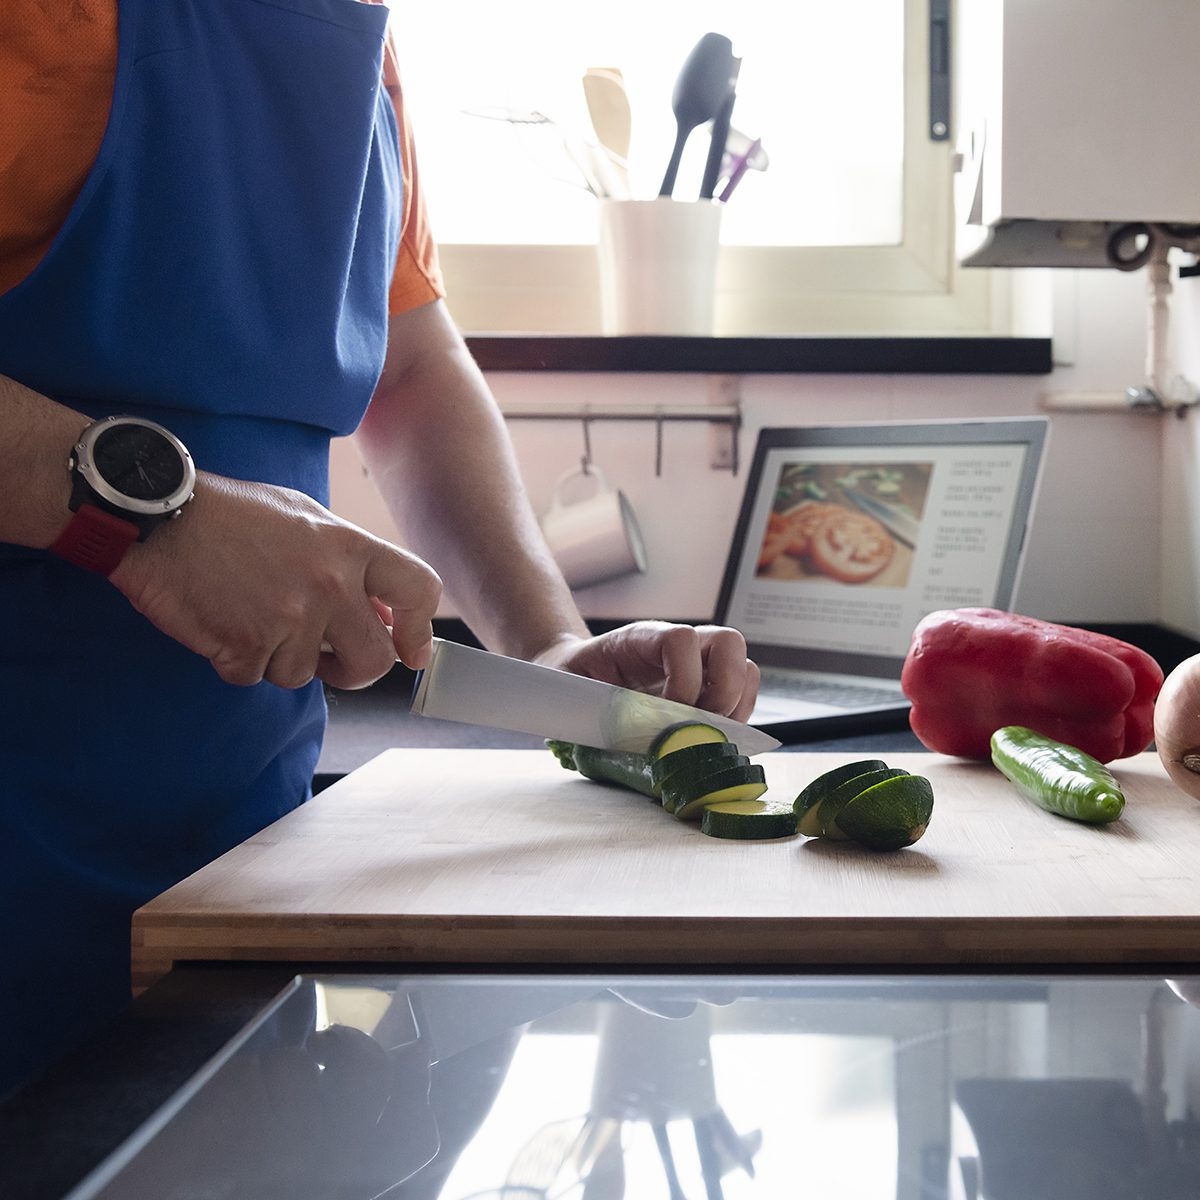 Man Cutting Vegetables In The Kitchen At Home